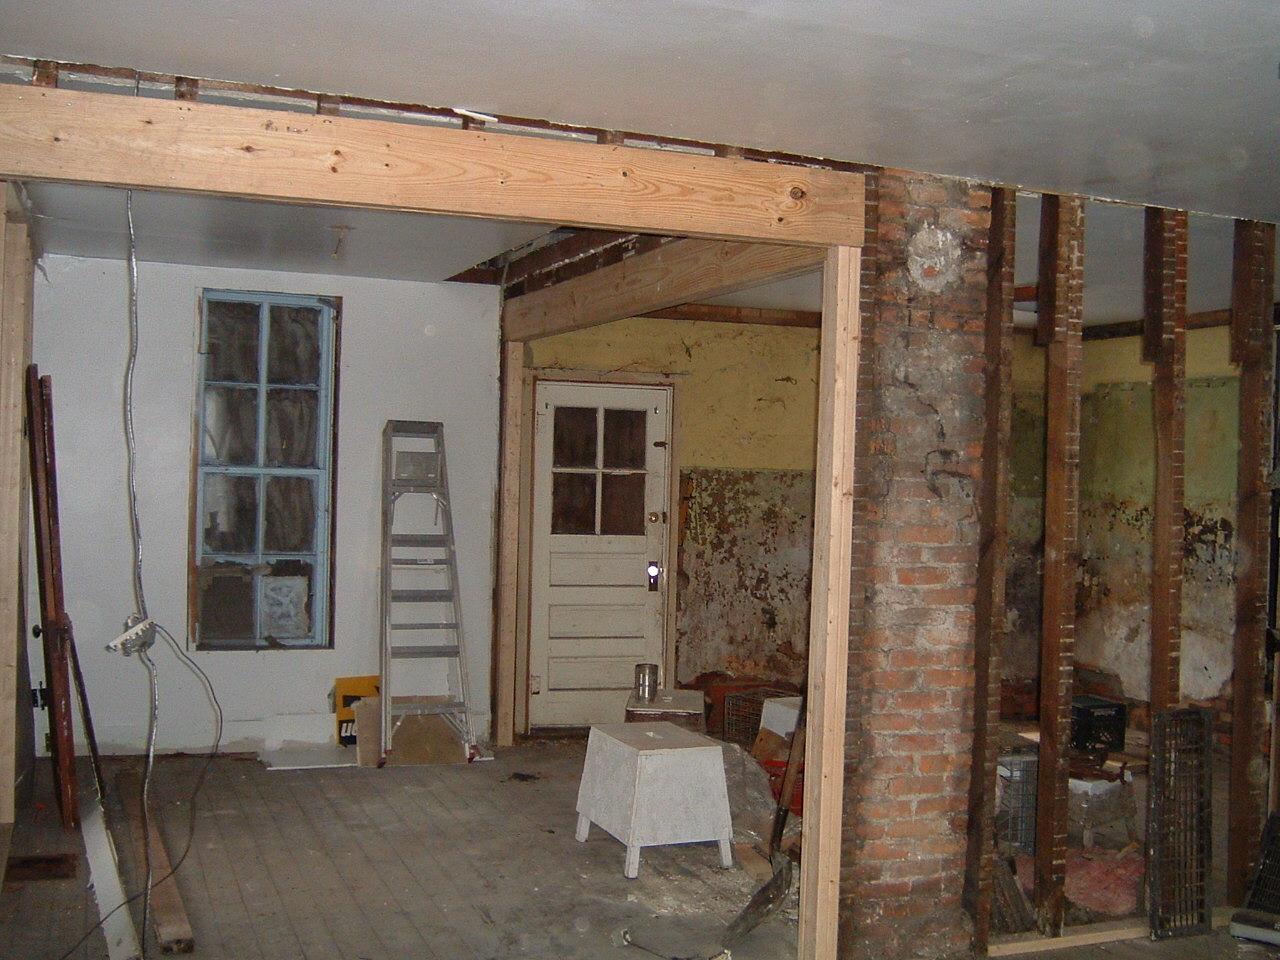 Grant Street House Interior, Before Restoration